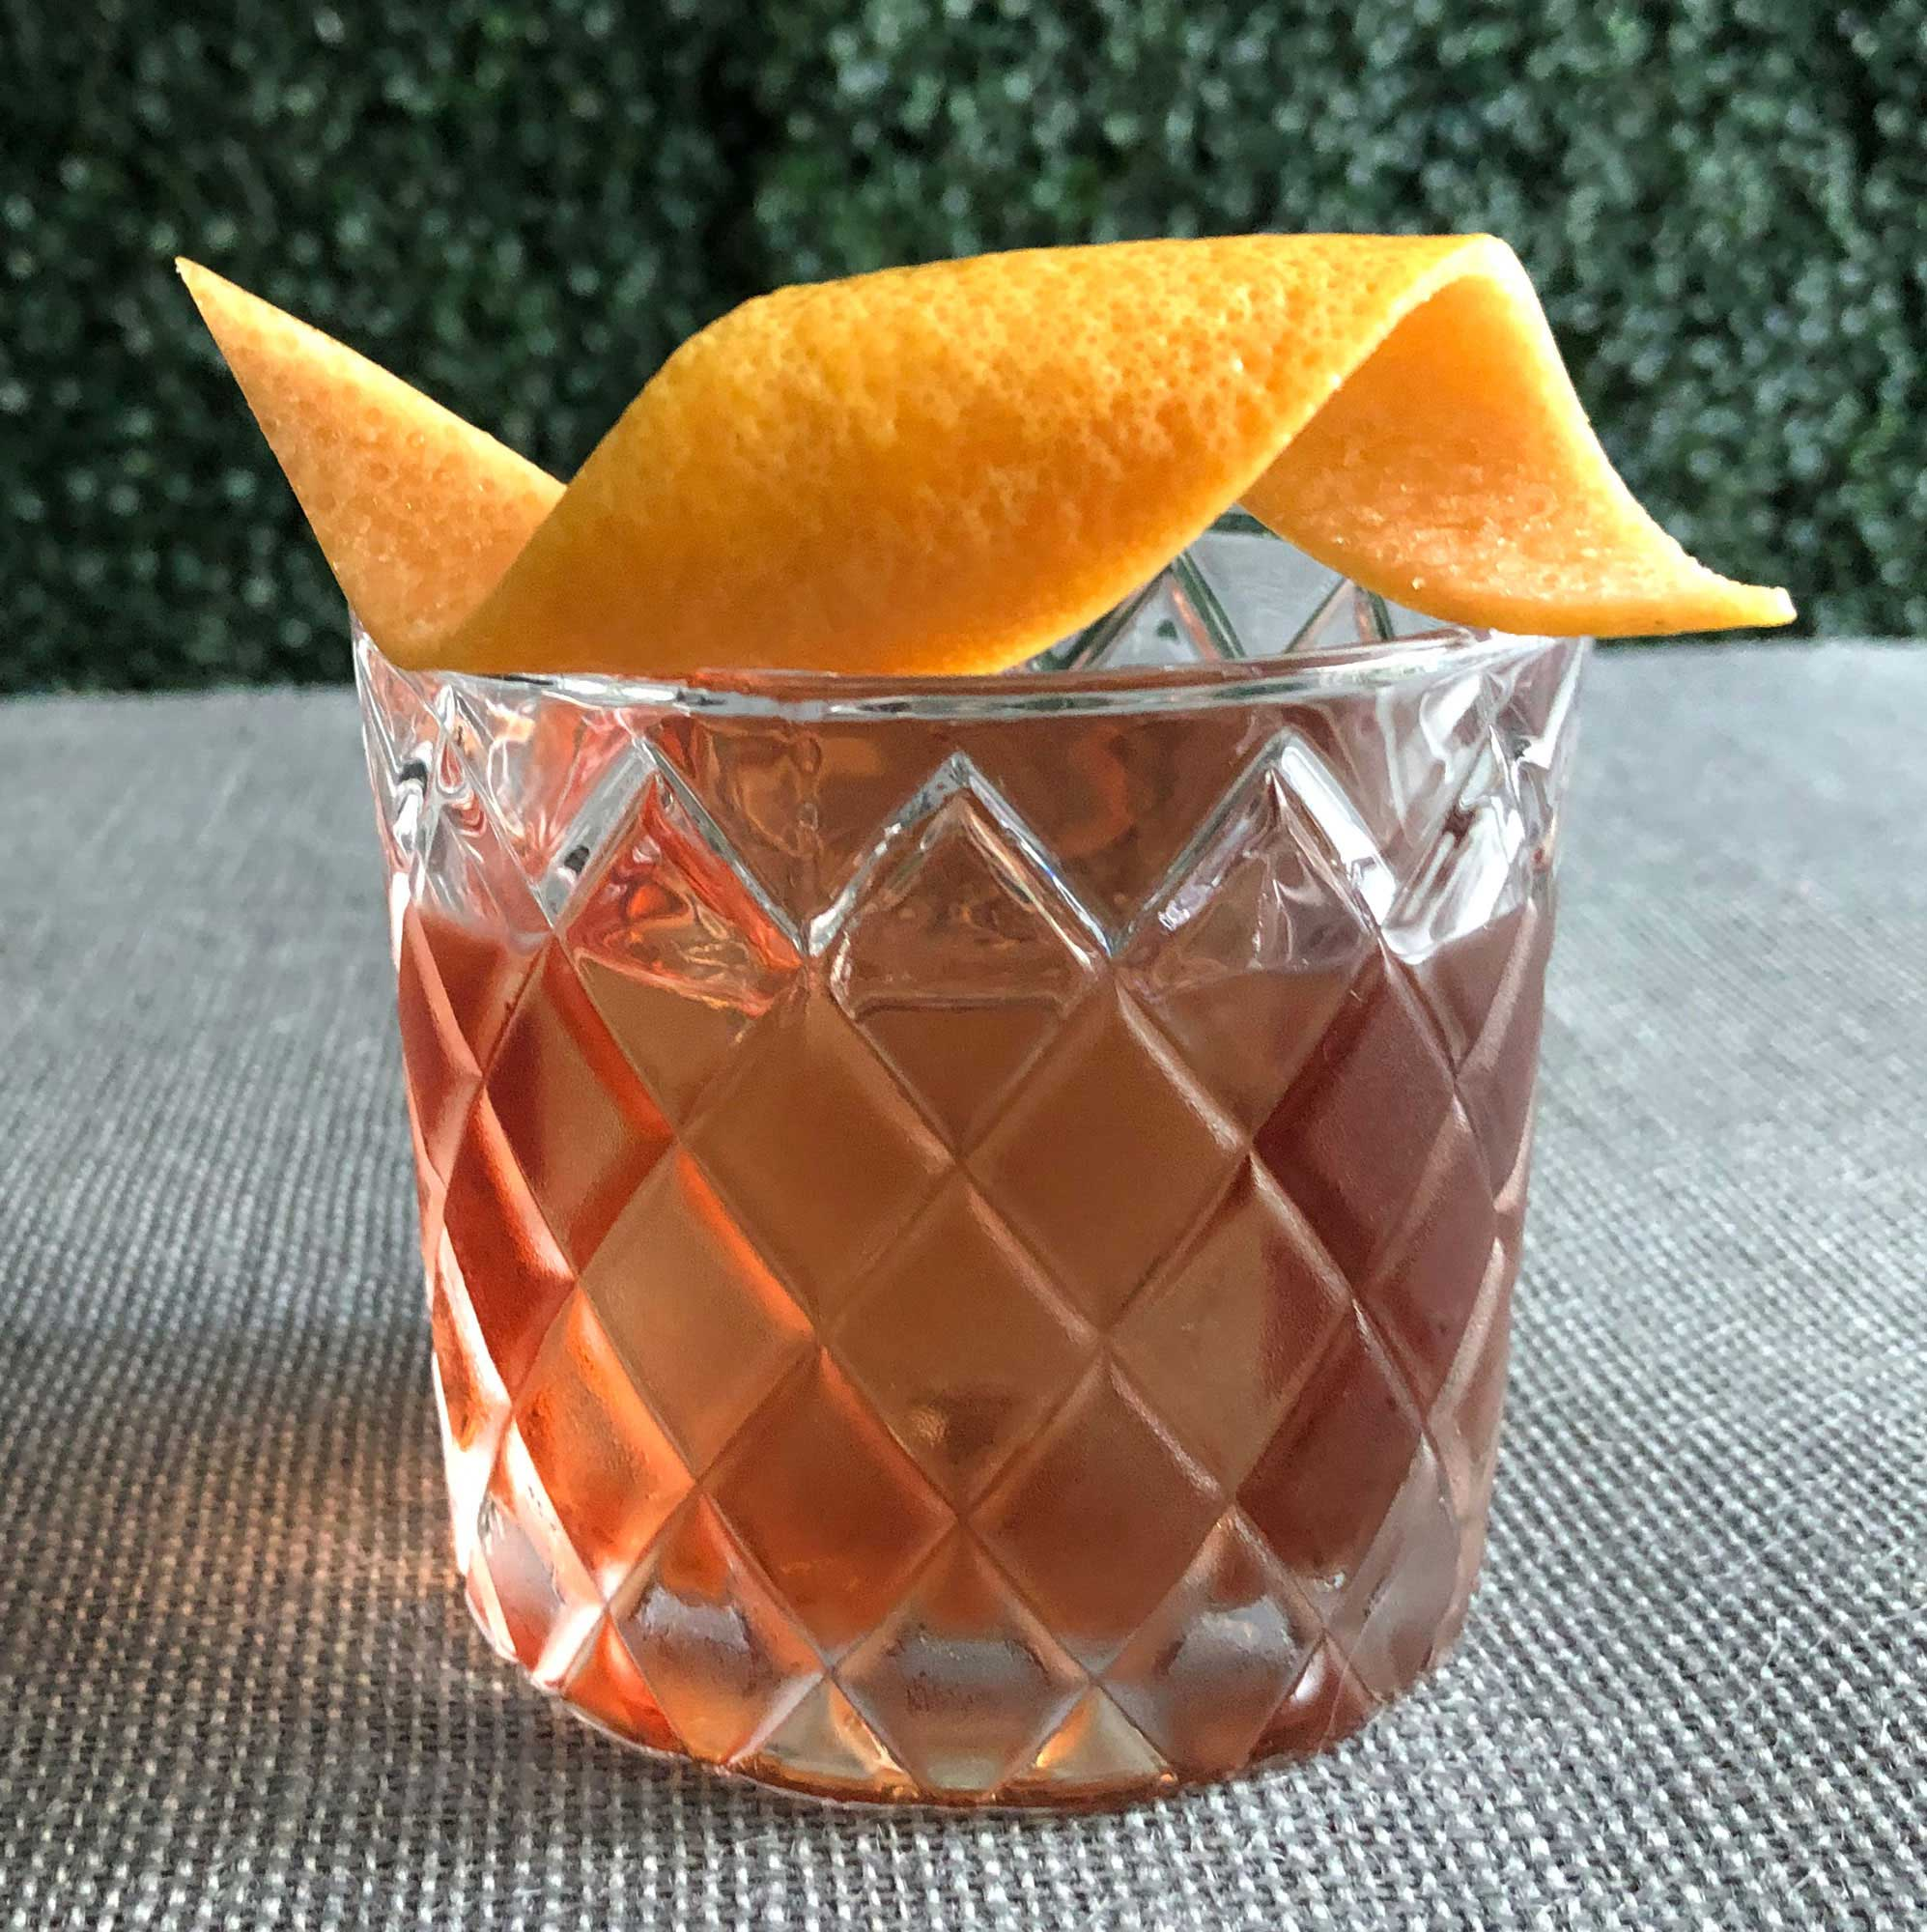 An example of the Count of Mount Kisco, the mixed drink (cocktail), by Scott Krahn, New York City, featuring Averell Damson Plum Gin Liqueur, Dolin Dry Vermouth de Chambéry, and Salers Gentian Apéritif; photo by Lee Edwards